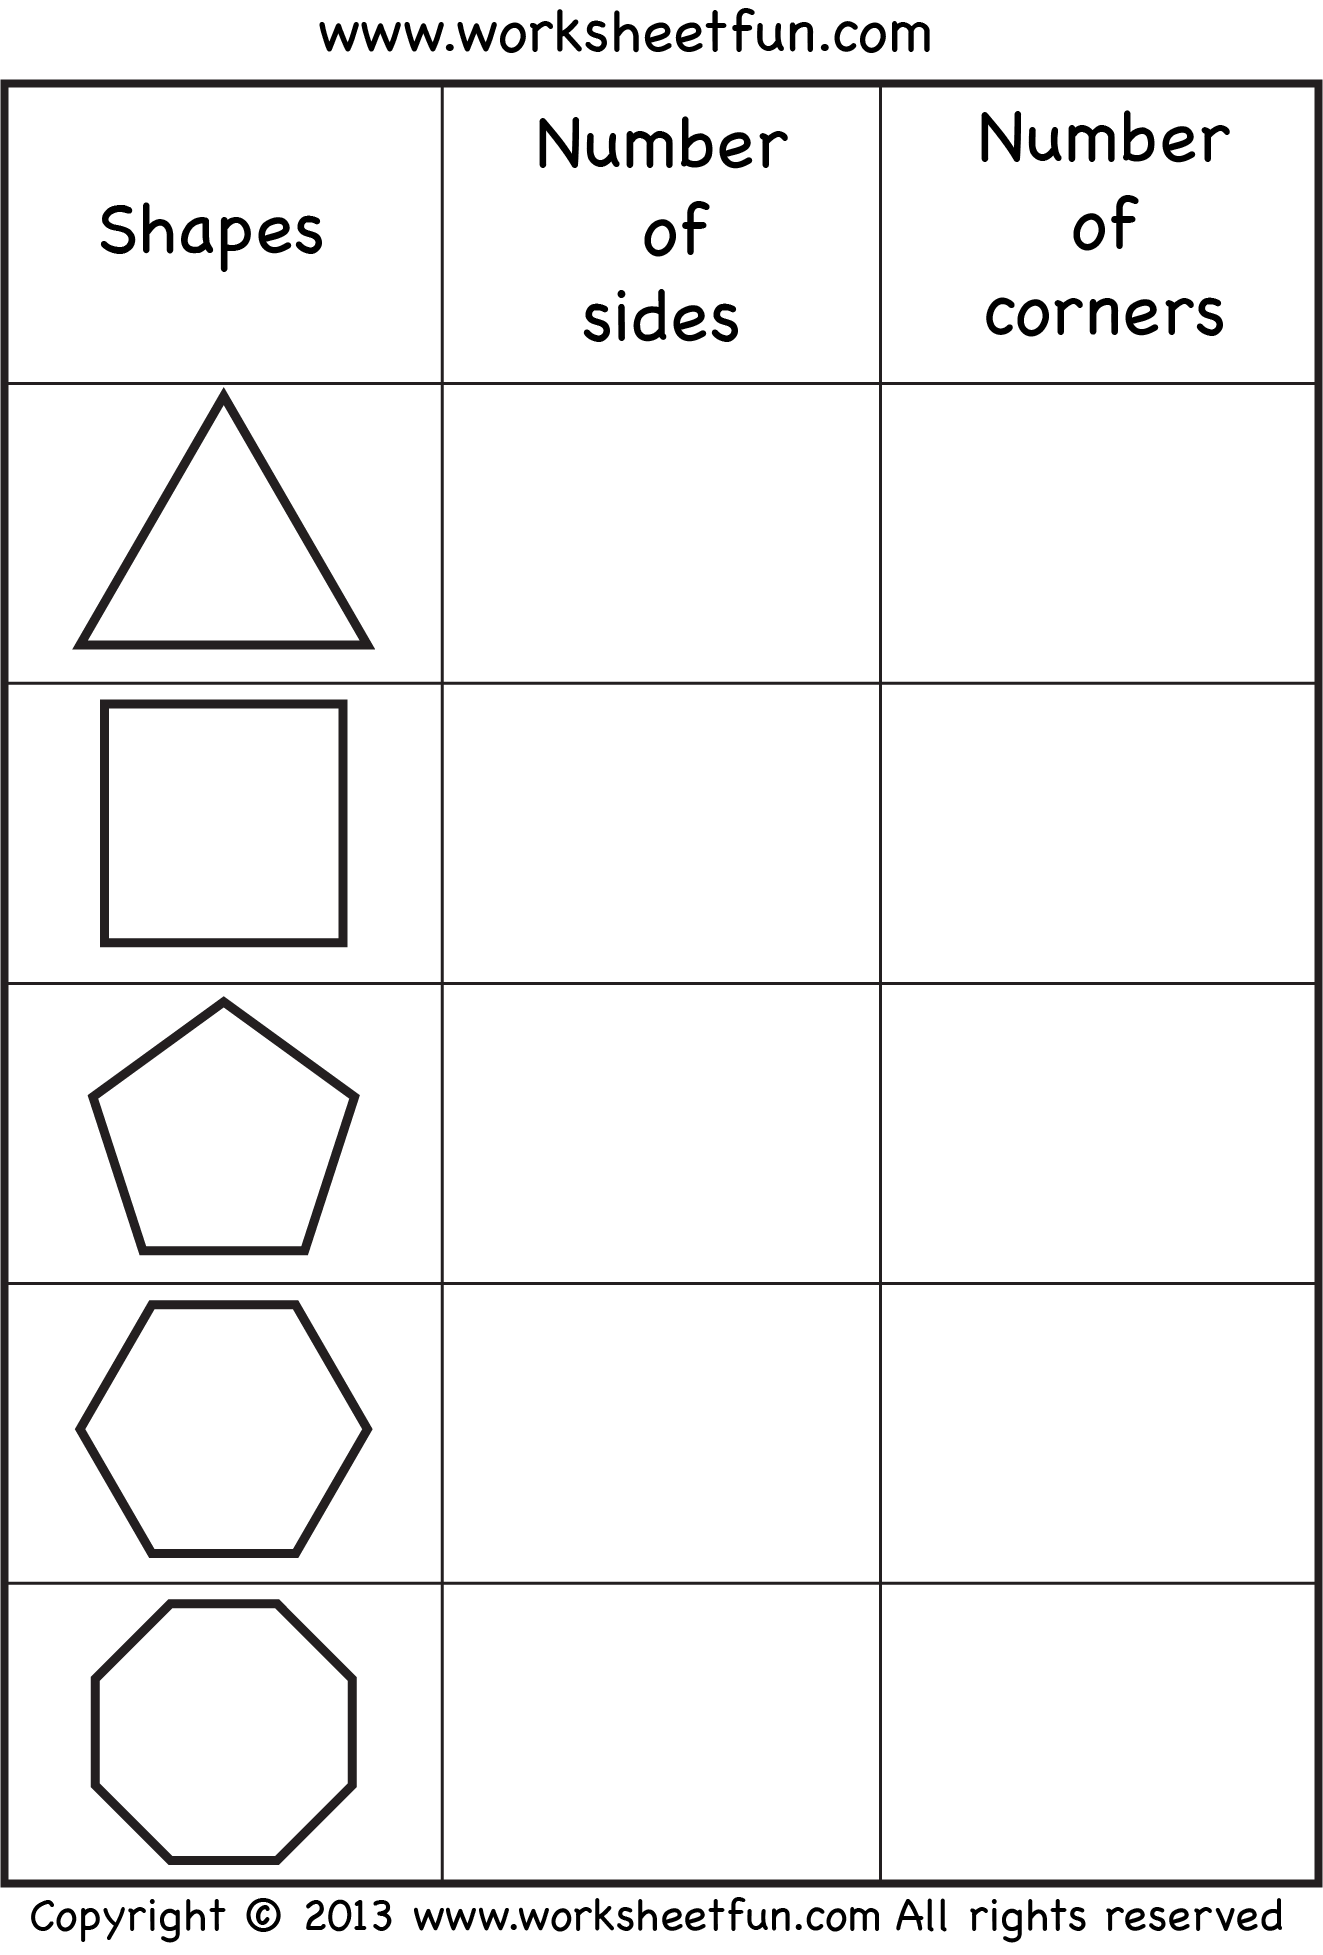 Sides And Corners Number Of Sides Number Of Corners